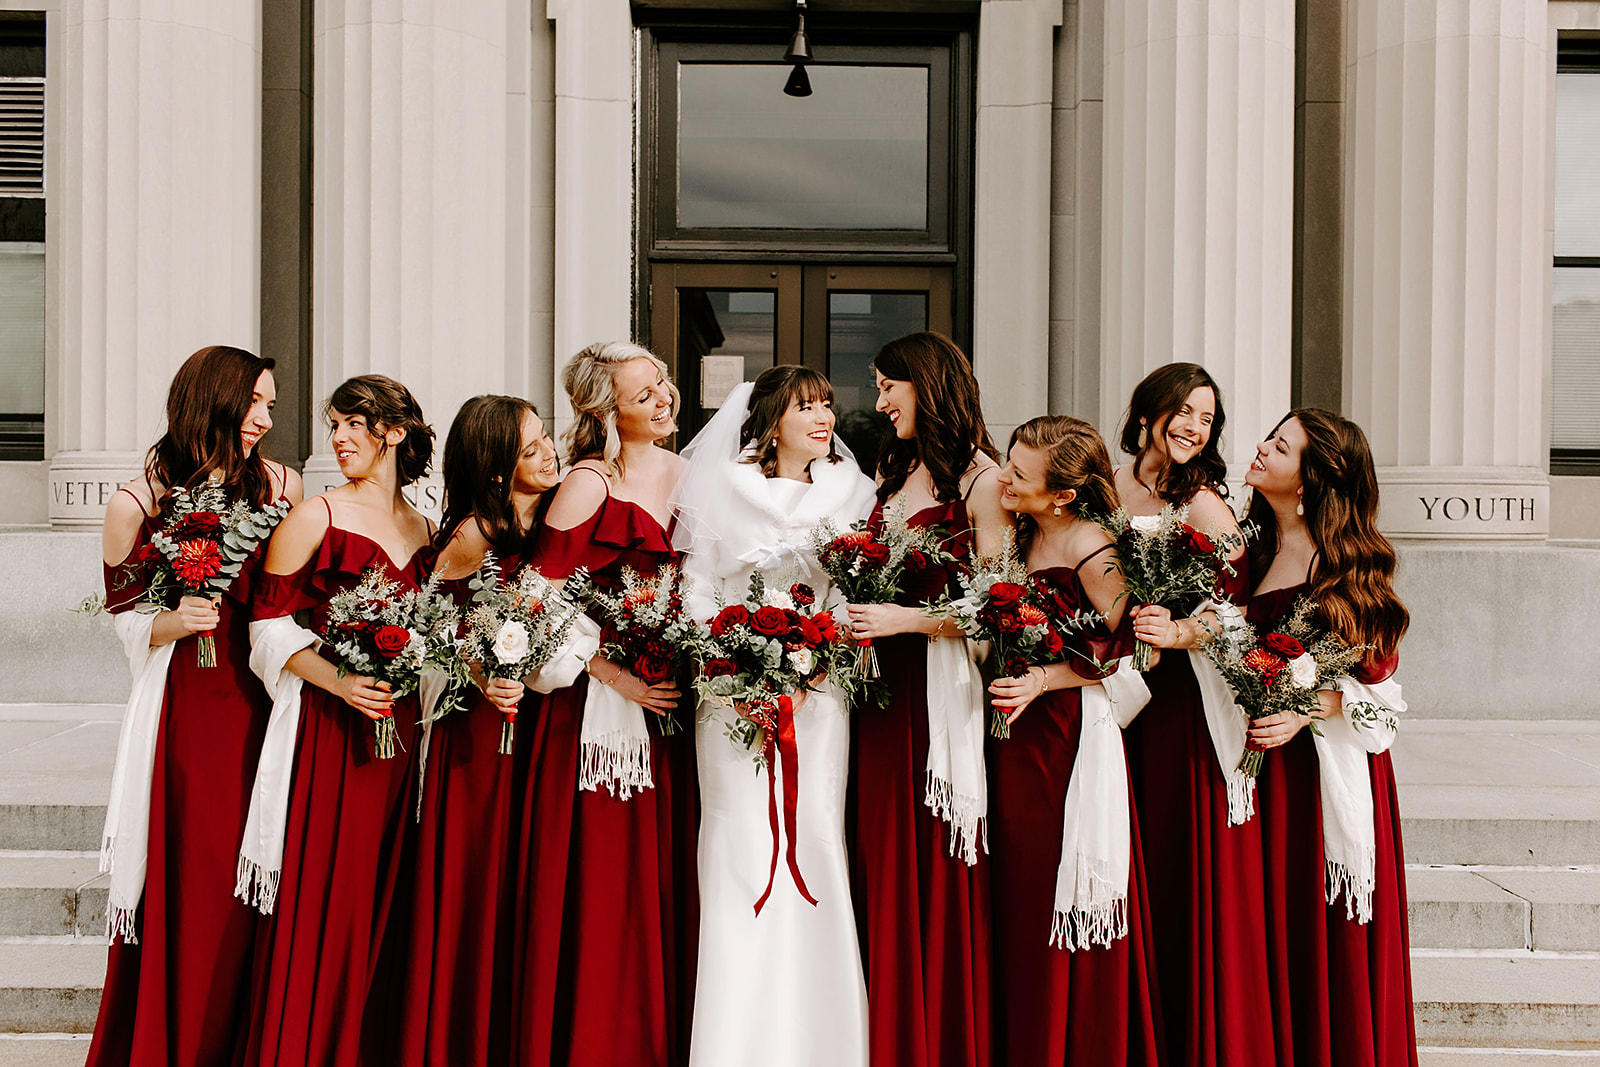 Emily and Davis_ Wedding at Vision Loft Indy in Indianapolis Indiana by Emily Elyse Wehner Photogrpahy LLC-238.jpg